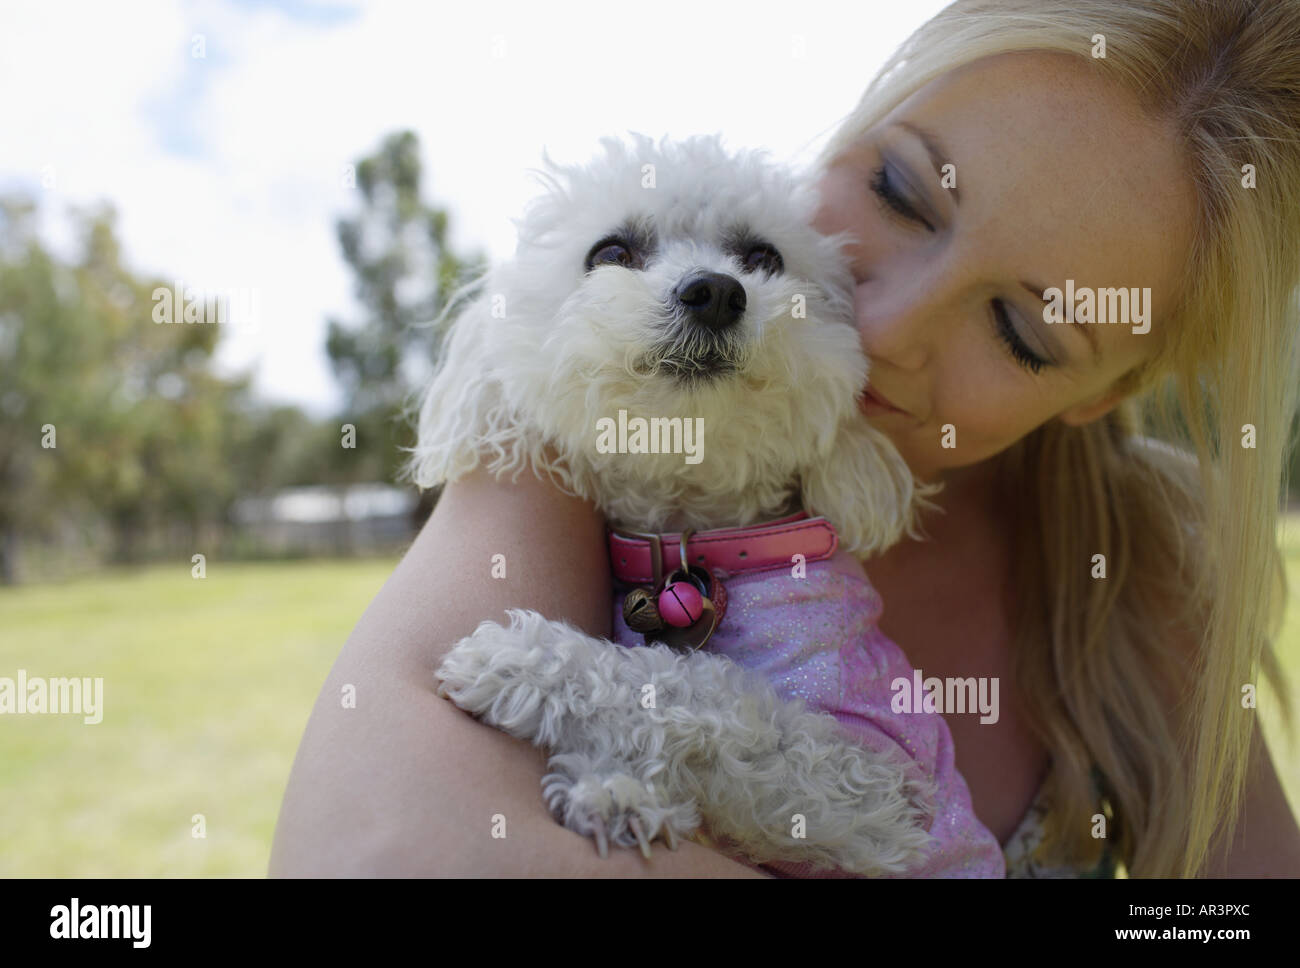 Young woman cuddling pet dog in park - Stock Image